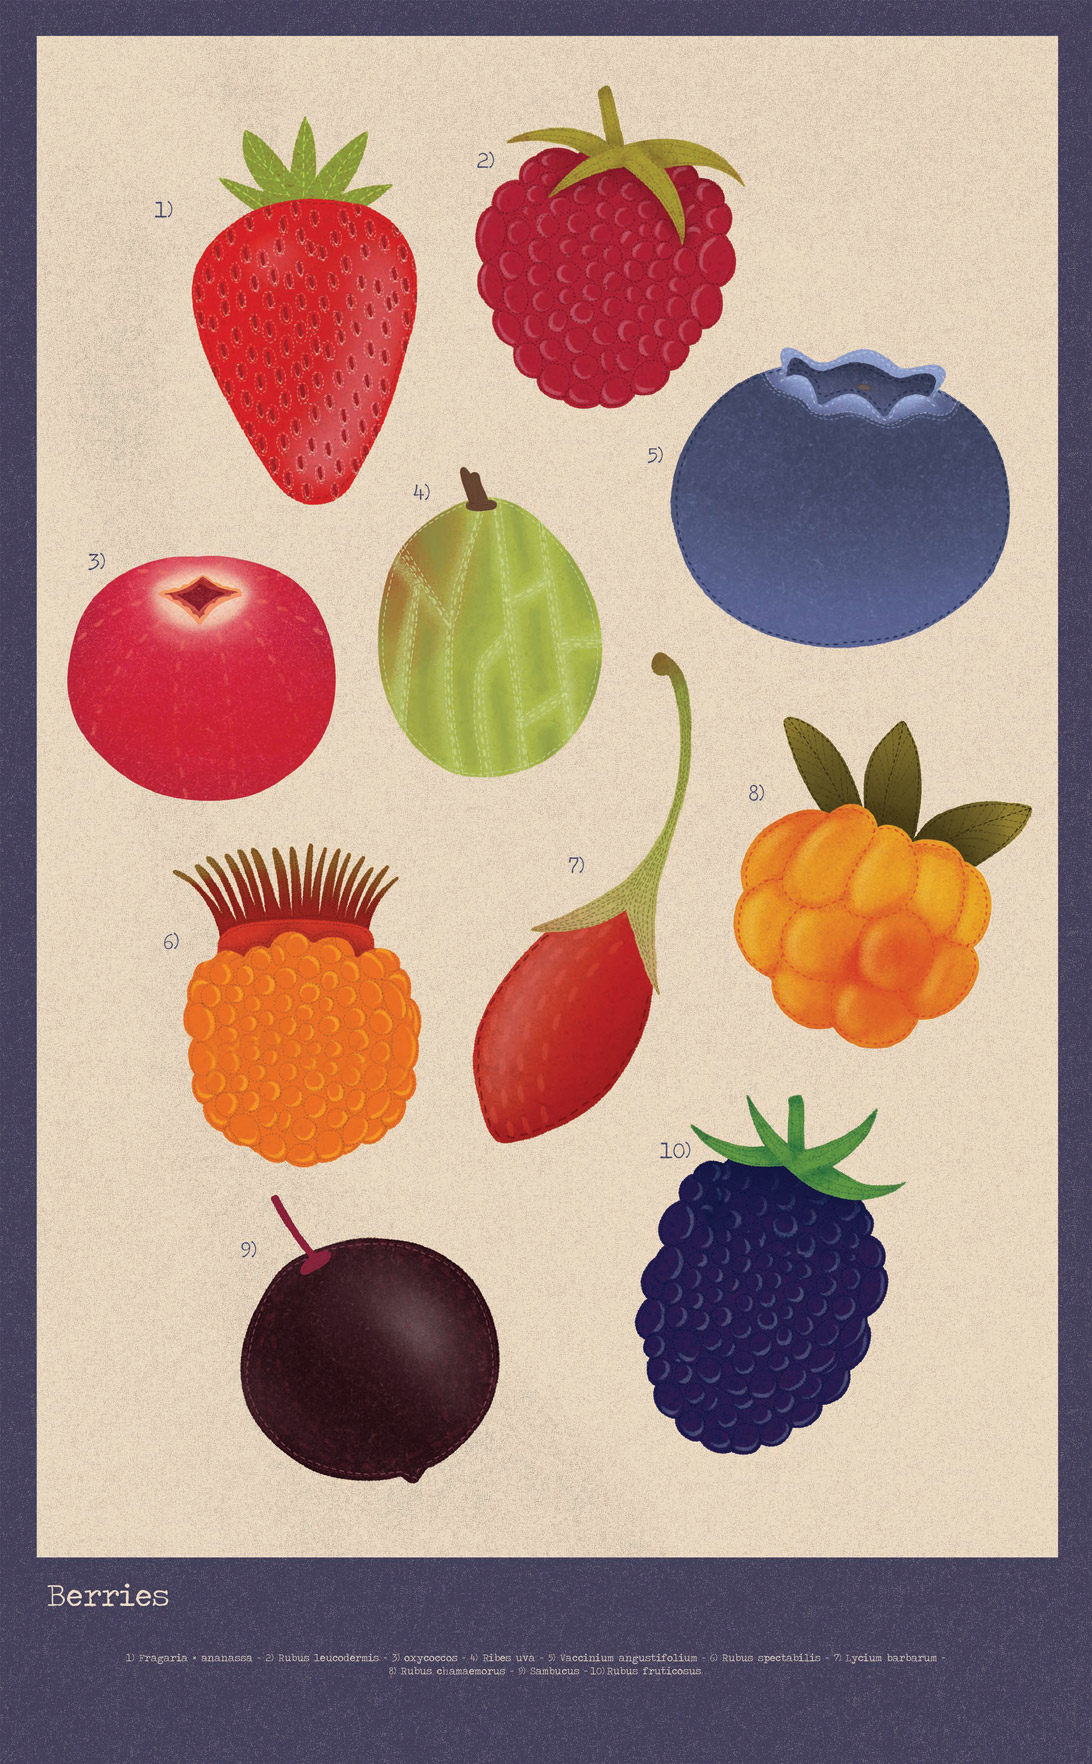 poster of berry illustrations